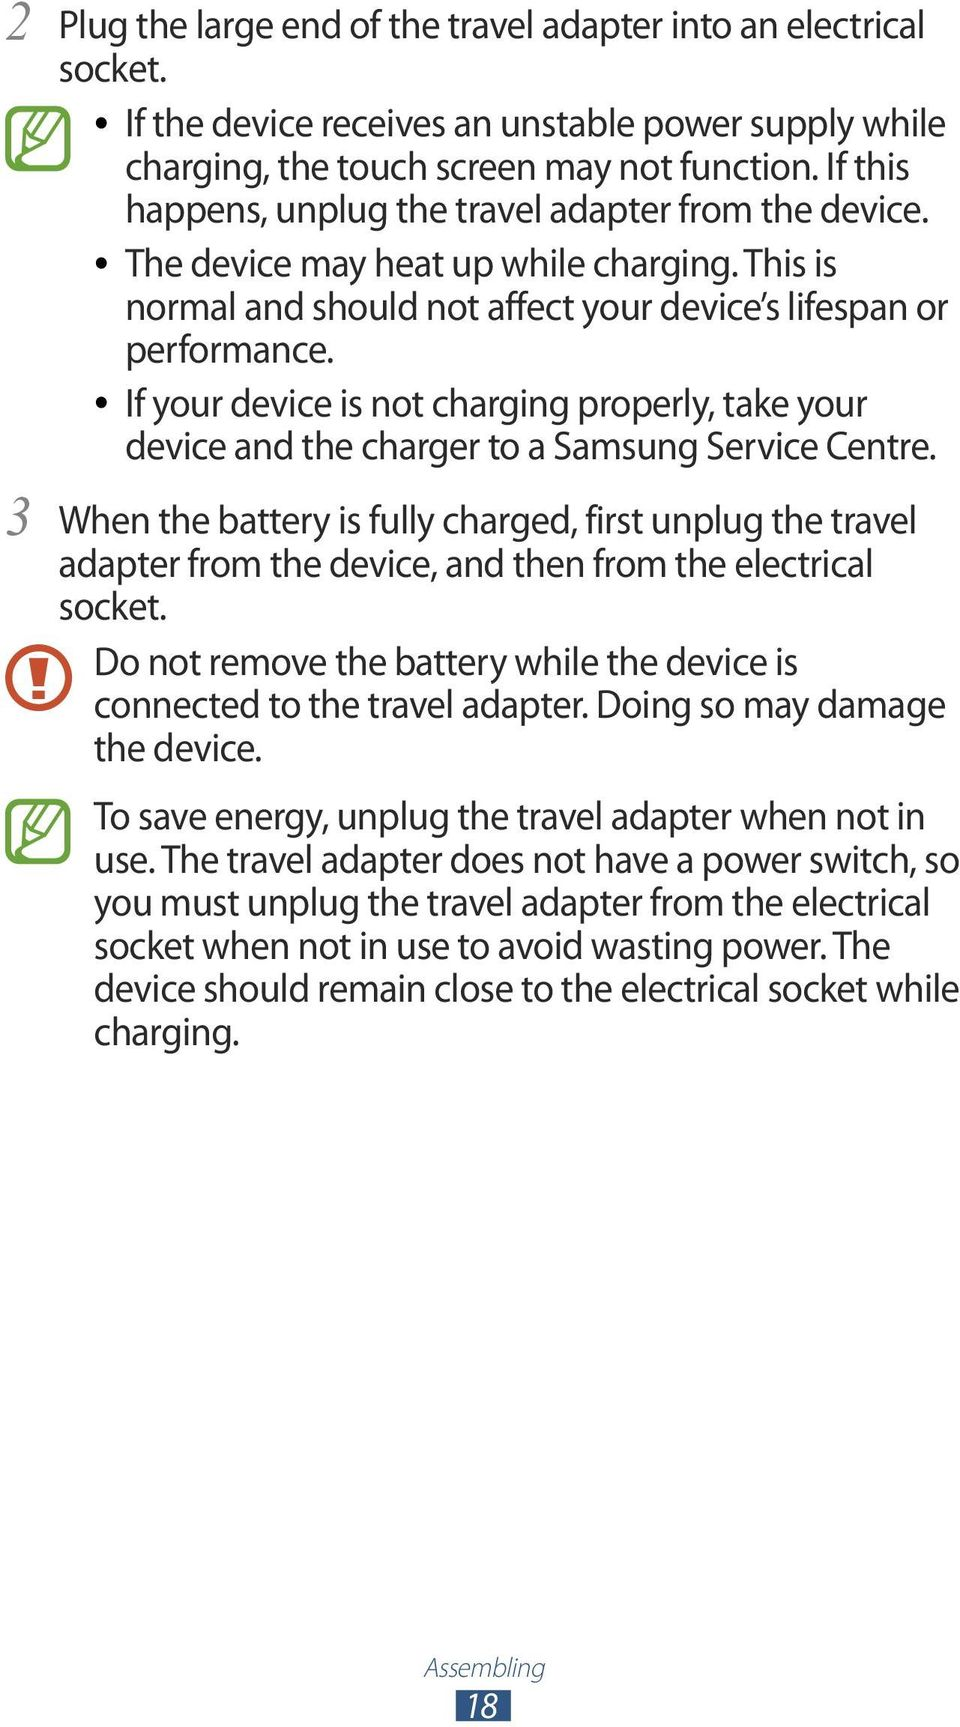 If your device is not charging properly, take your device and the charger to a Samsung Service Centre.